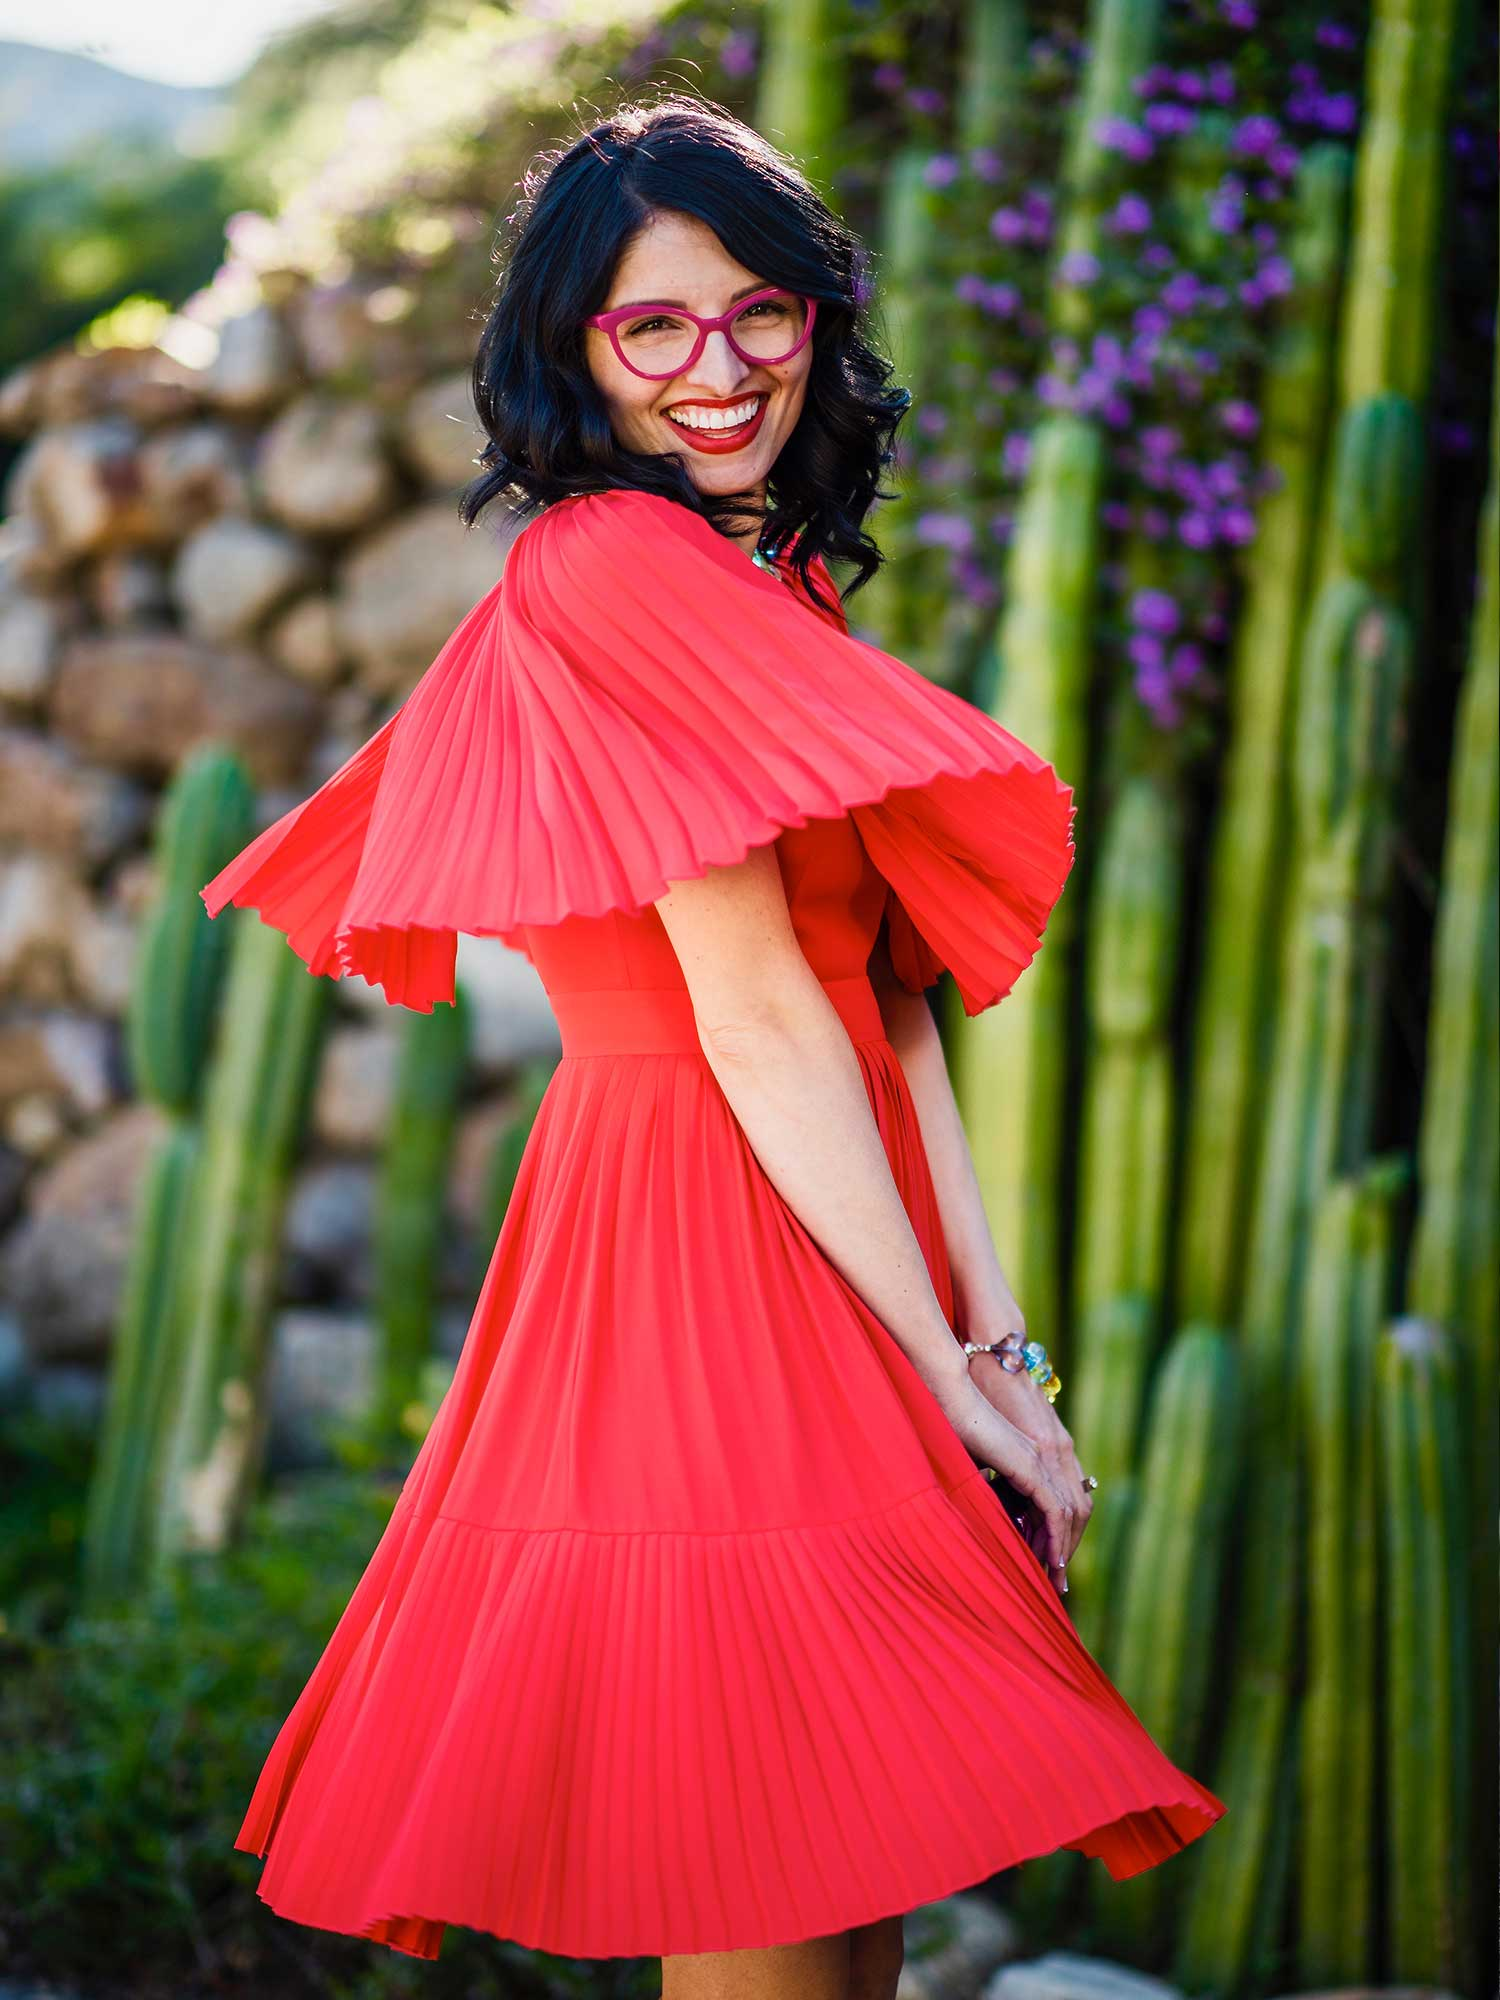 Jenna-Pilant-San-Diego-Style-Blogger-Lucky-Little-Mustardseed-What-To-Wear-To-A-Desert-Wedding-3